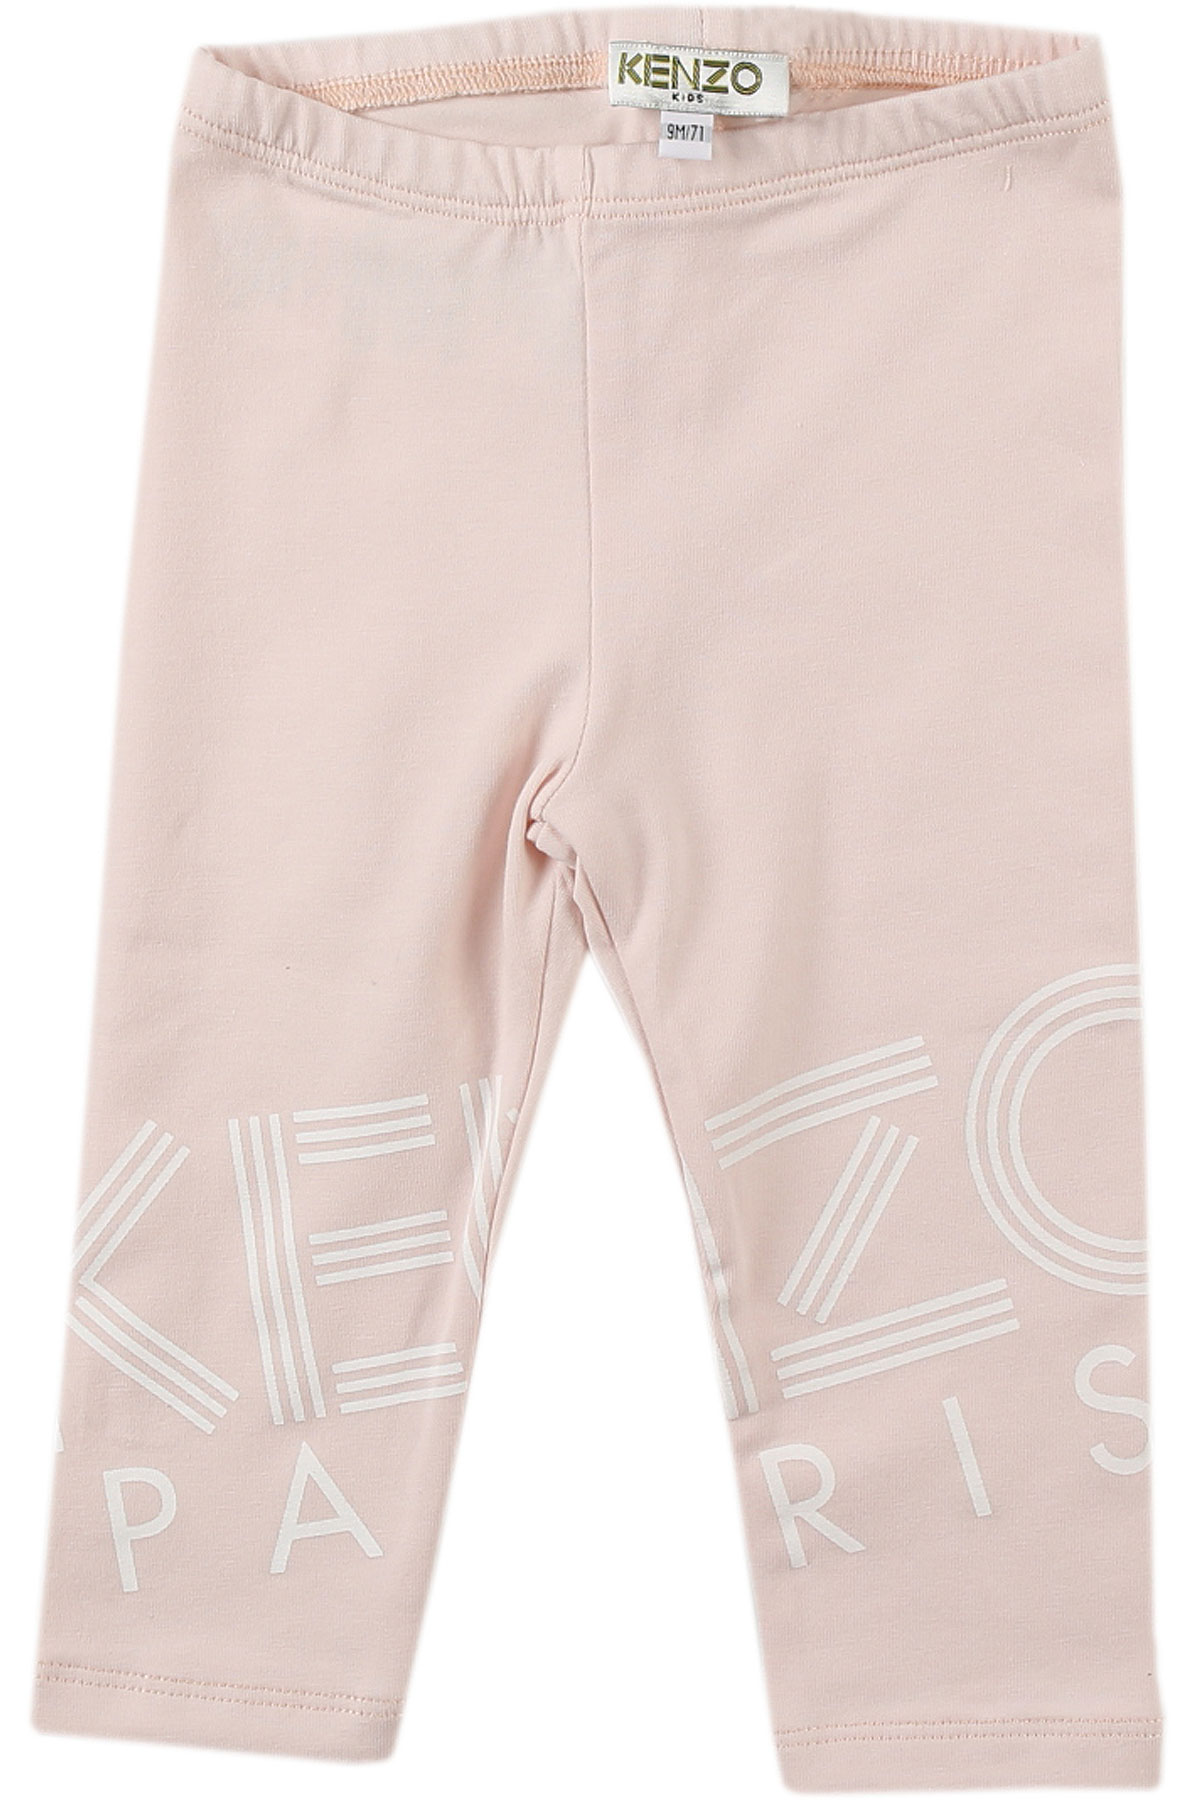 Image of Kenzo Baby Pants for Girls, Pink, Cotton, 2017, 12M 18M 2Y 6M 9M